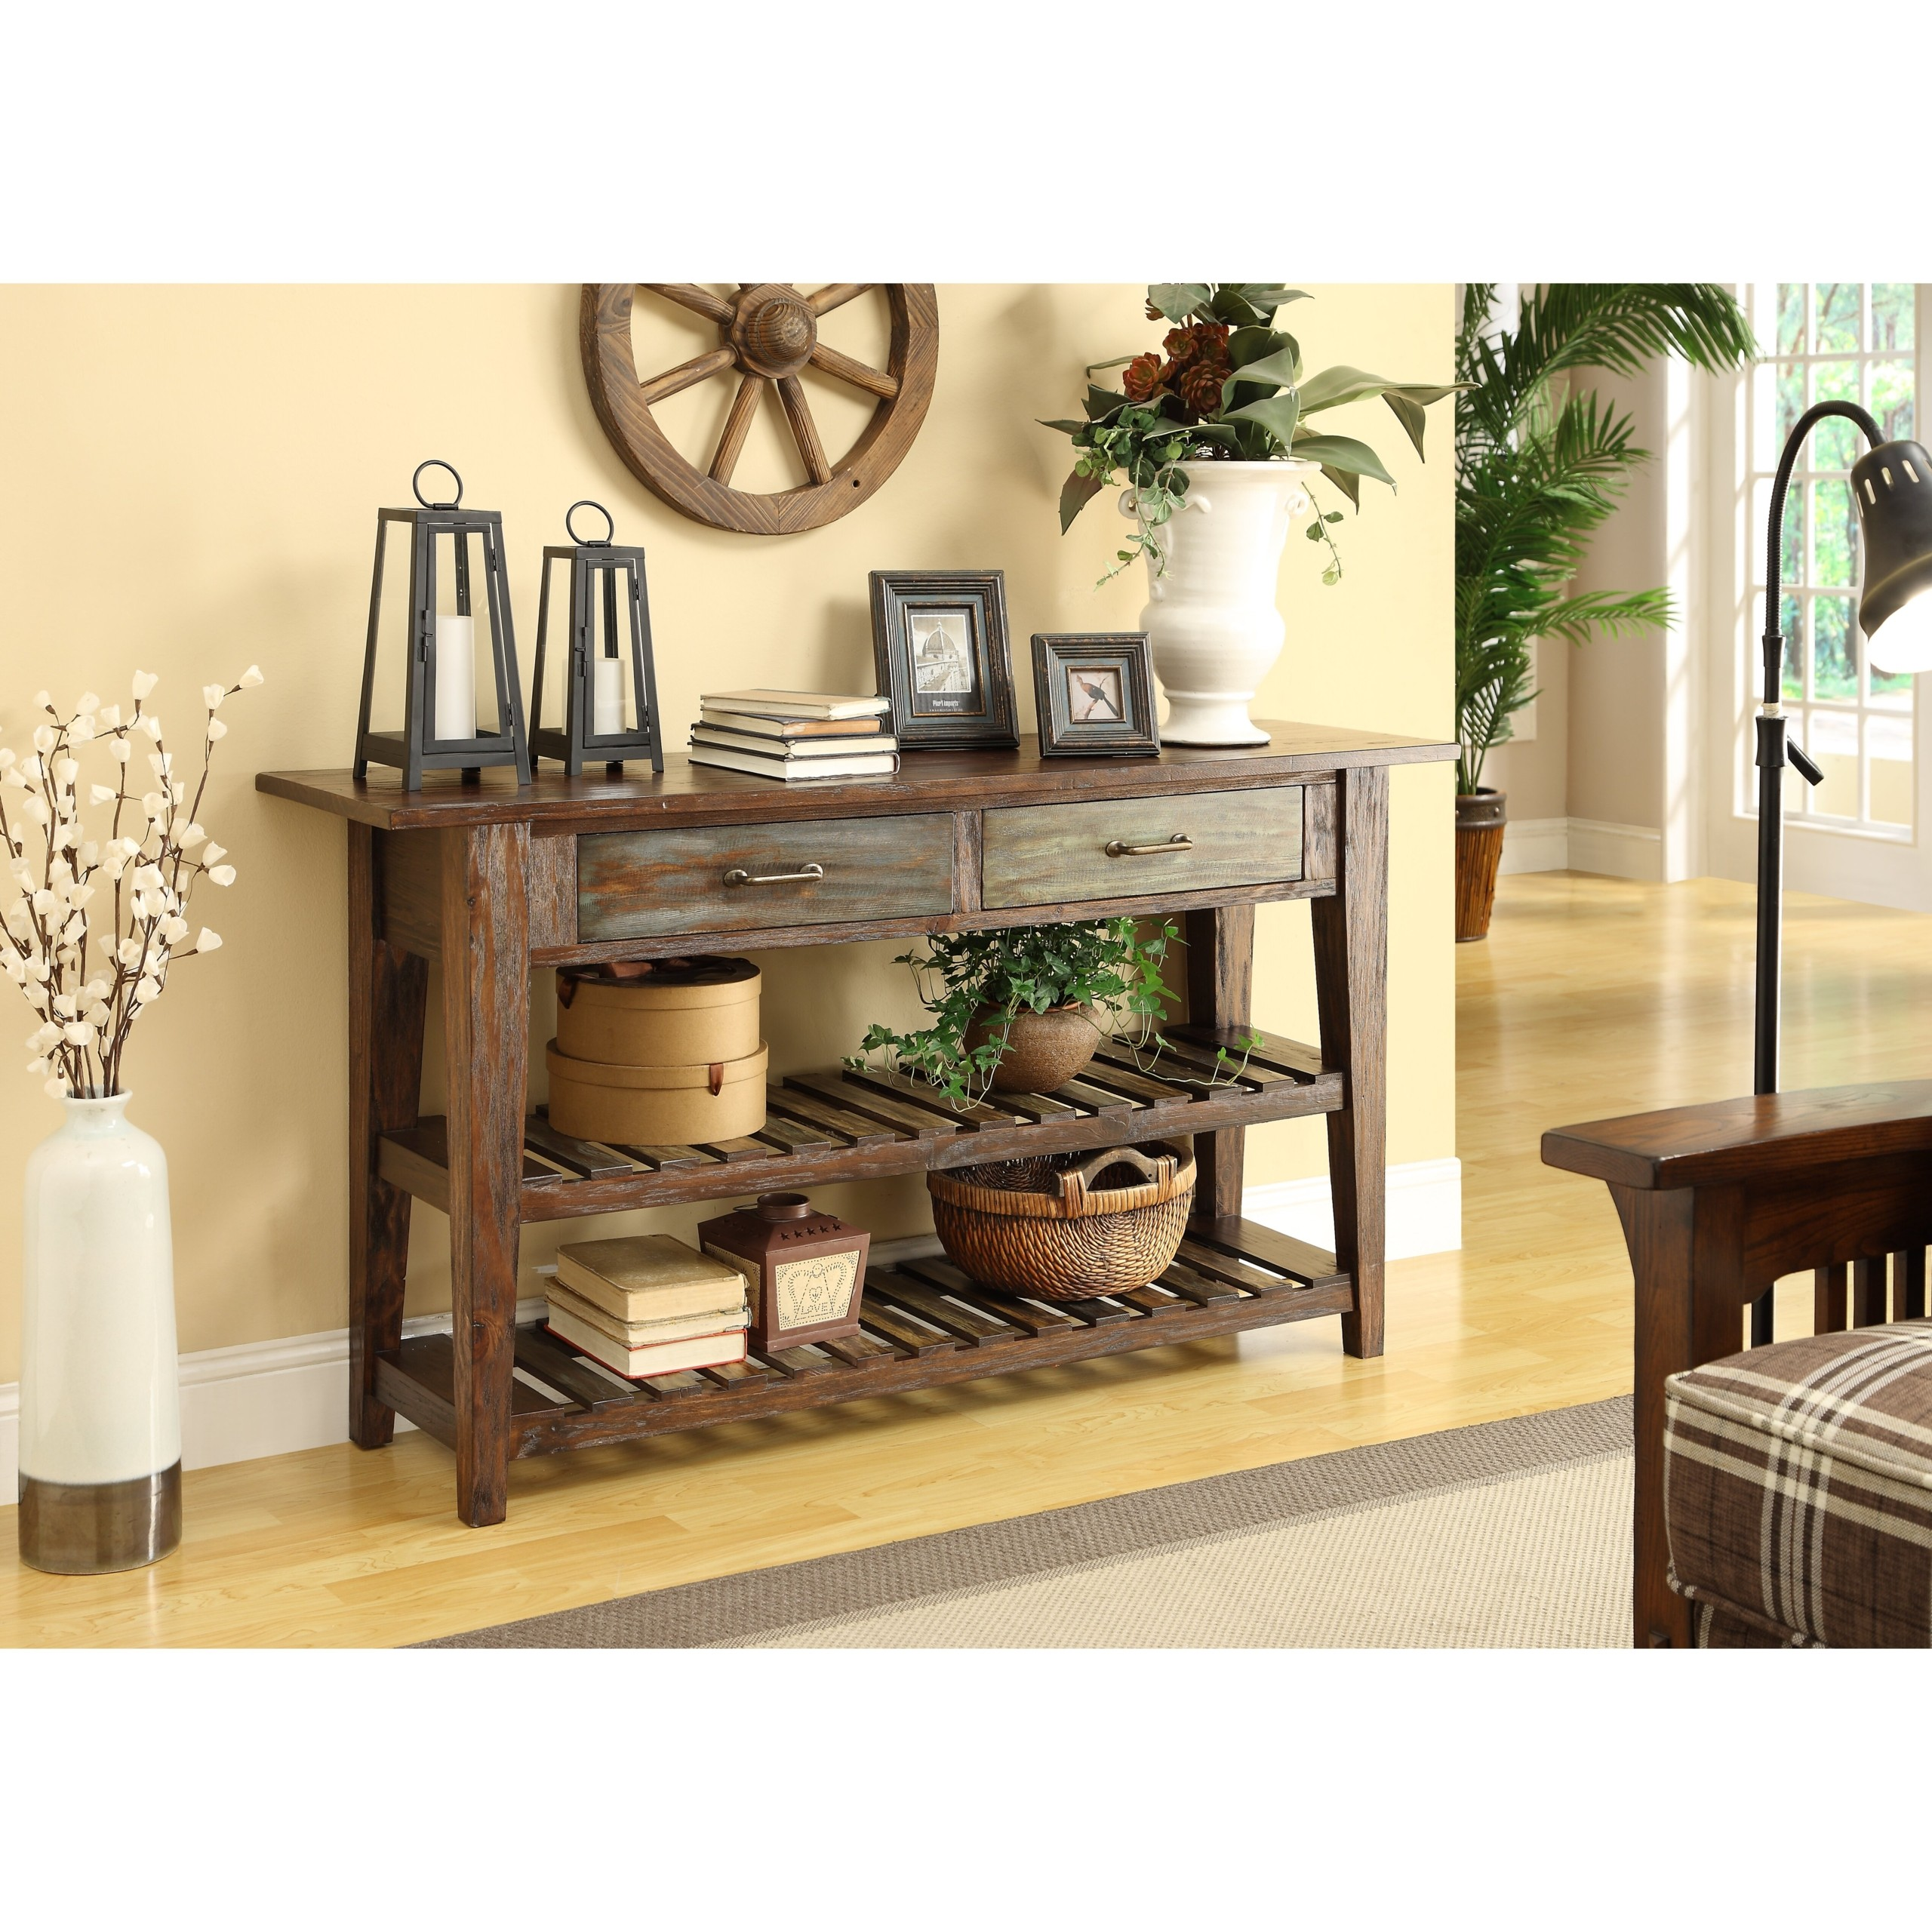 Courtland Console Table in Brown